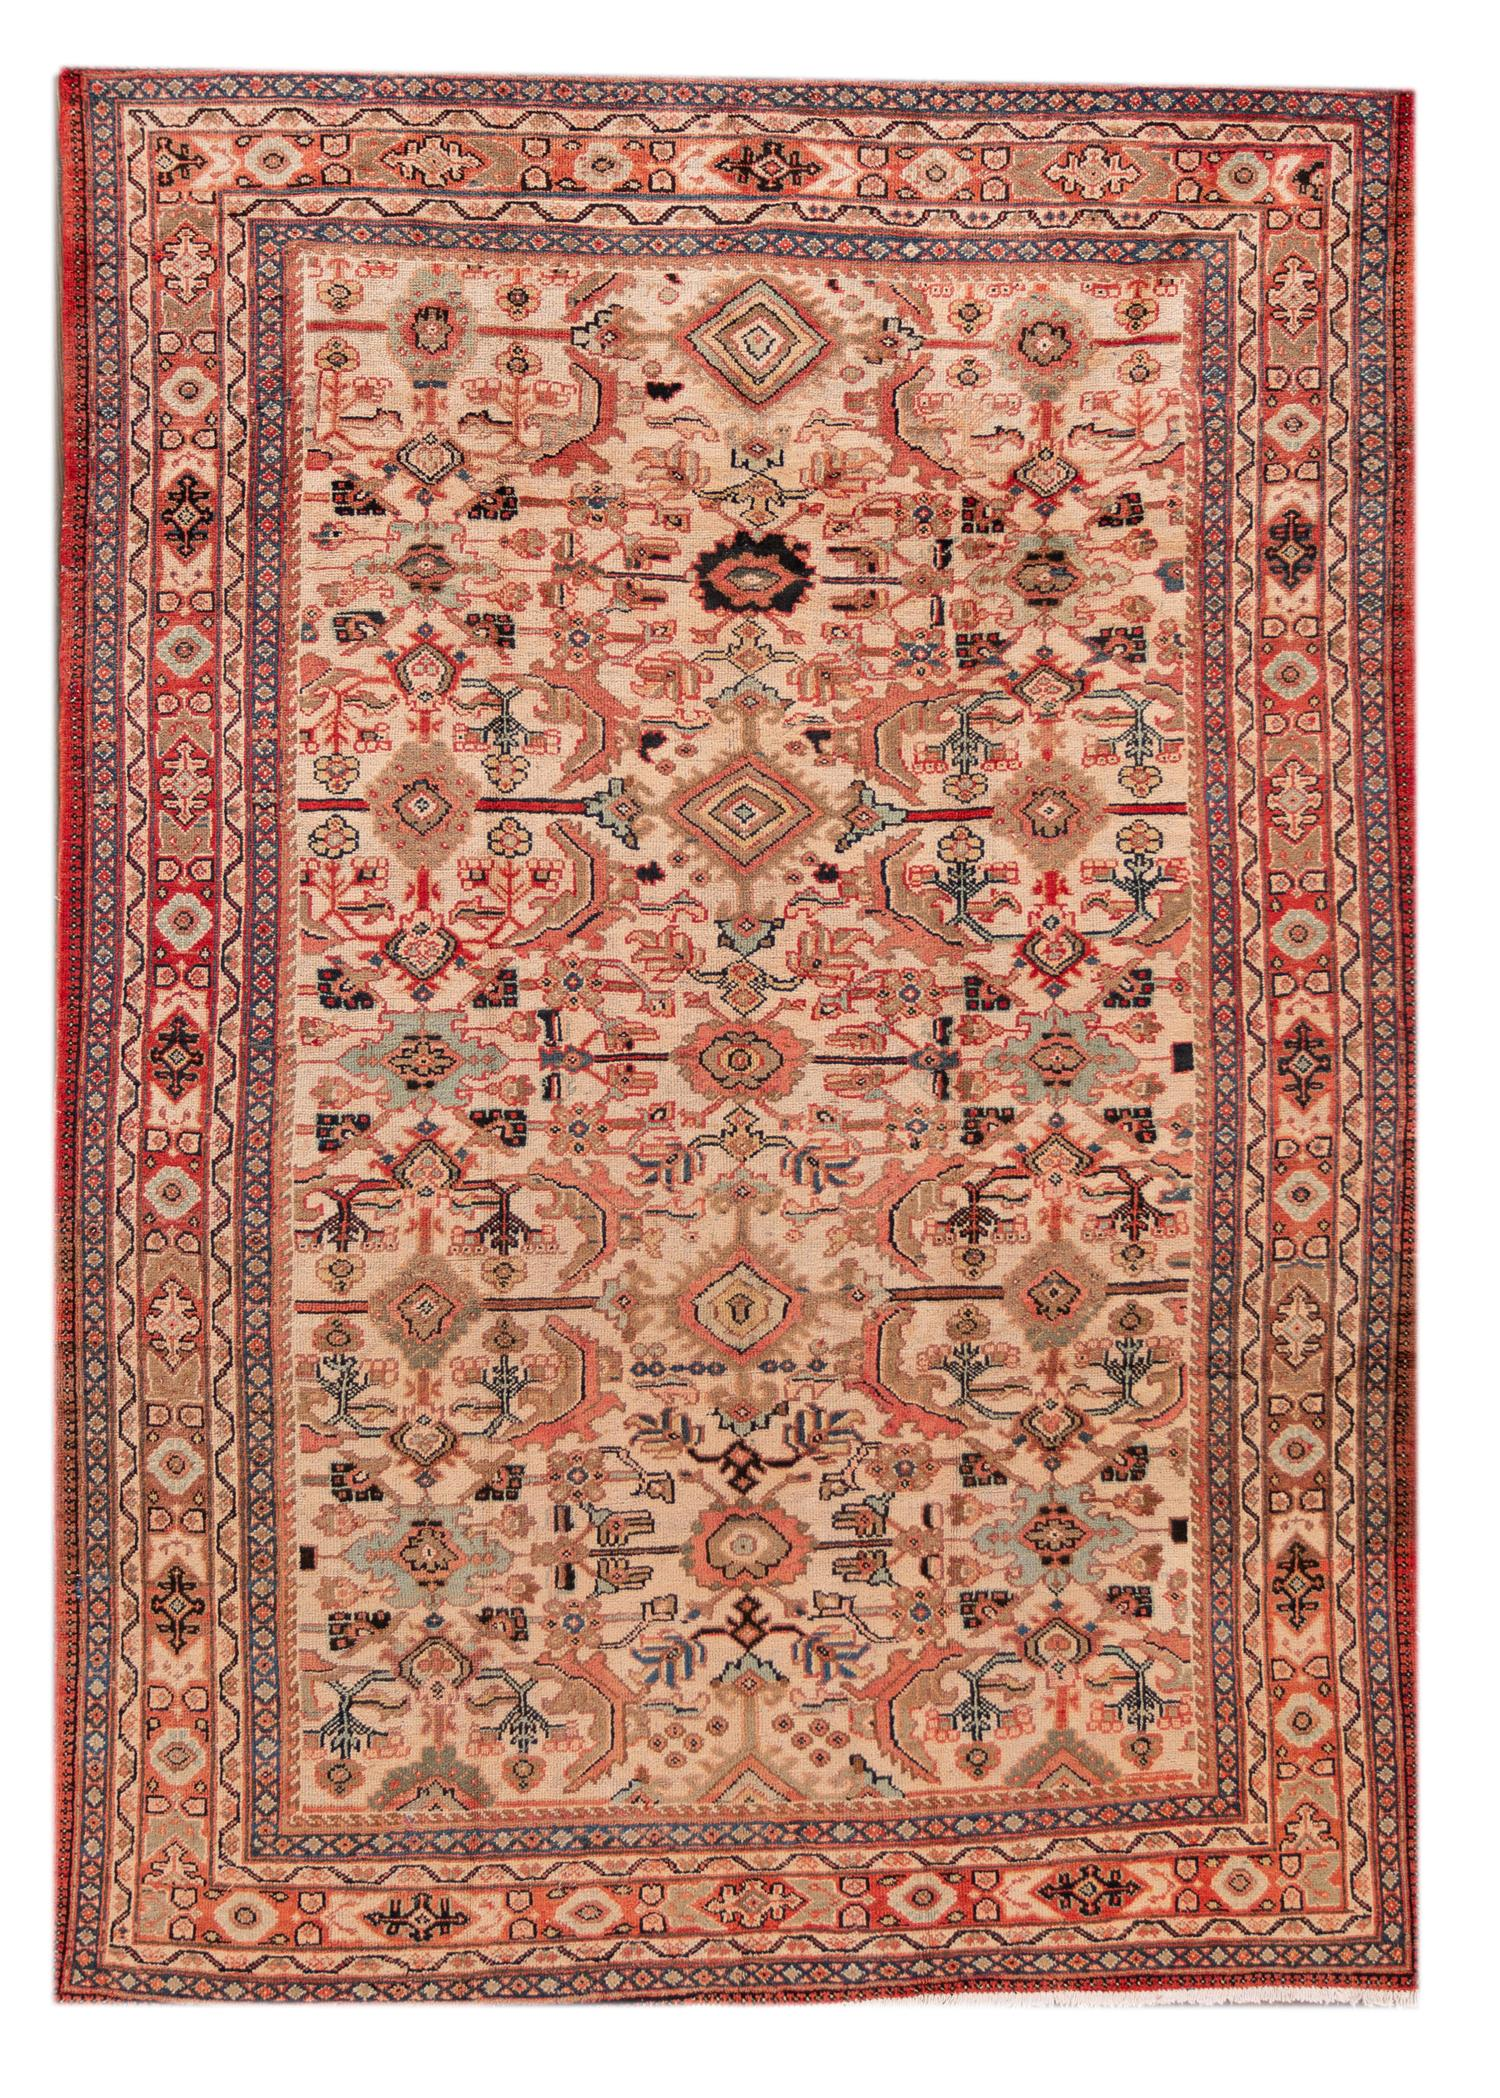 Antique 20th Century Mahal Rug, 8X11